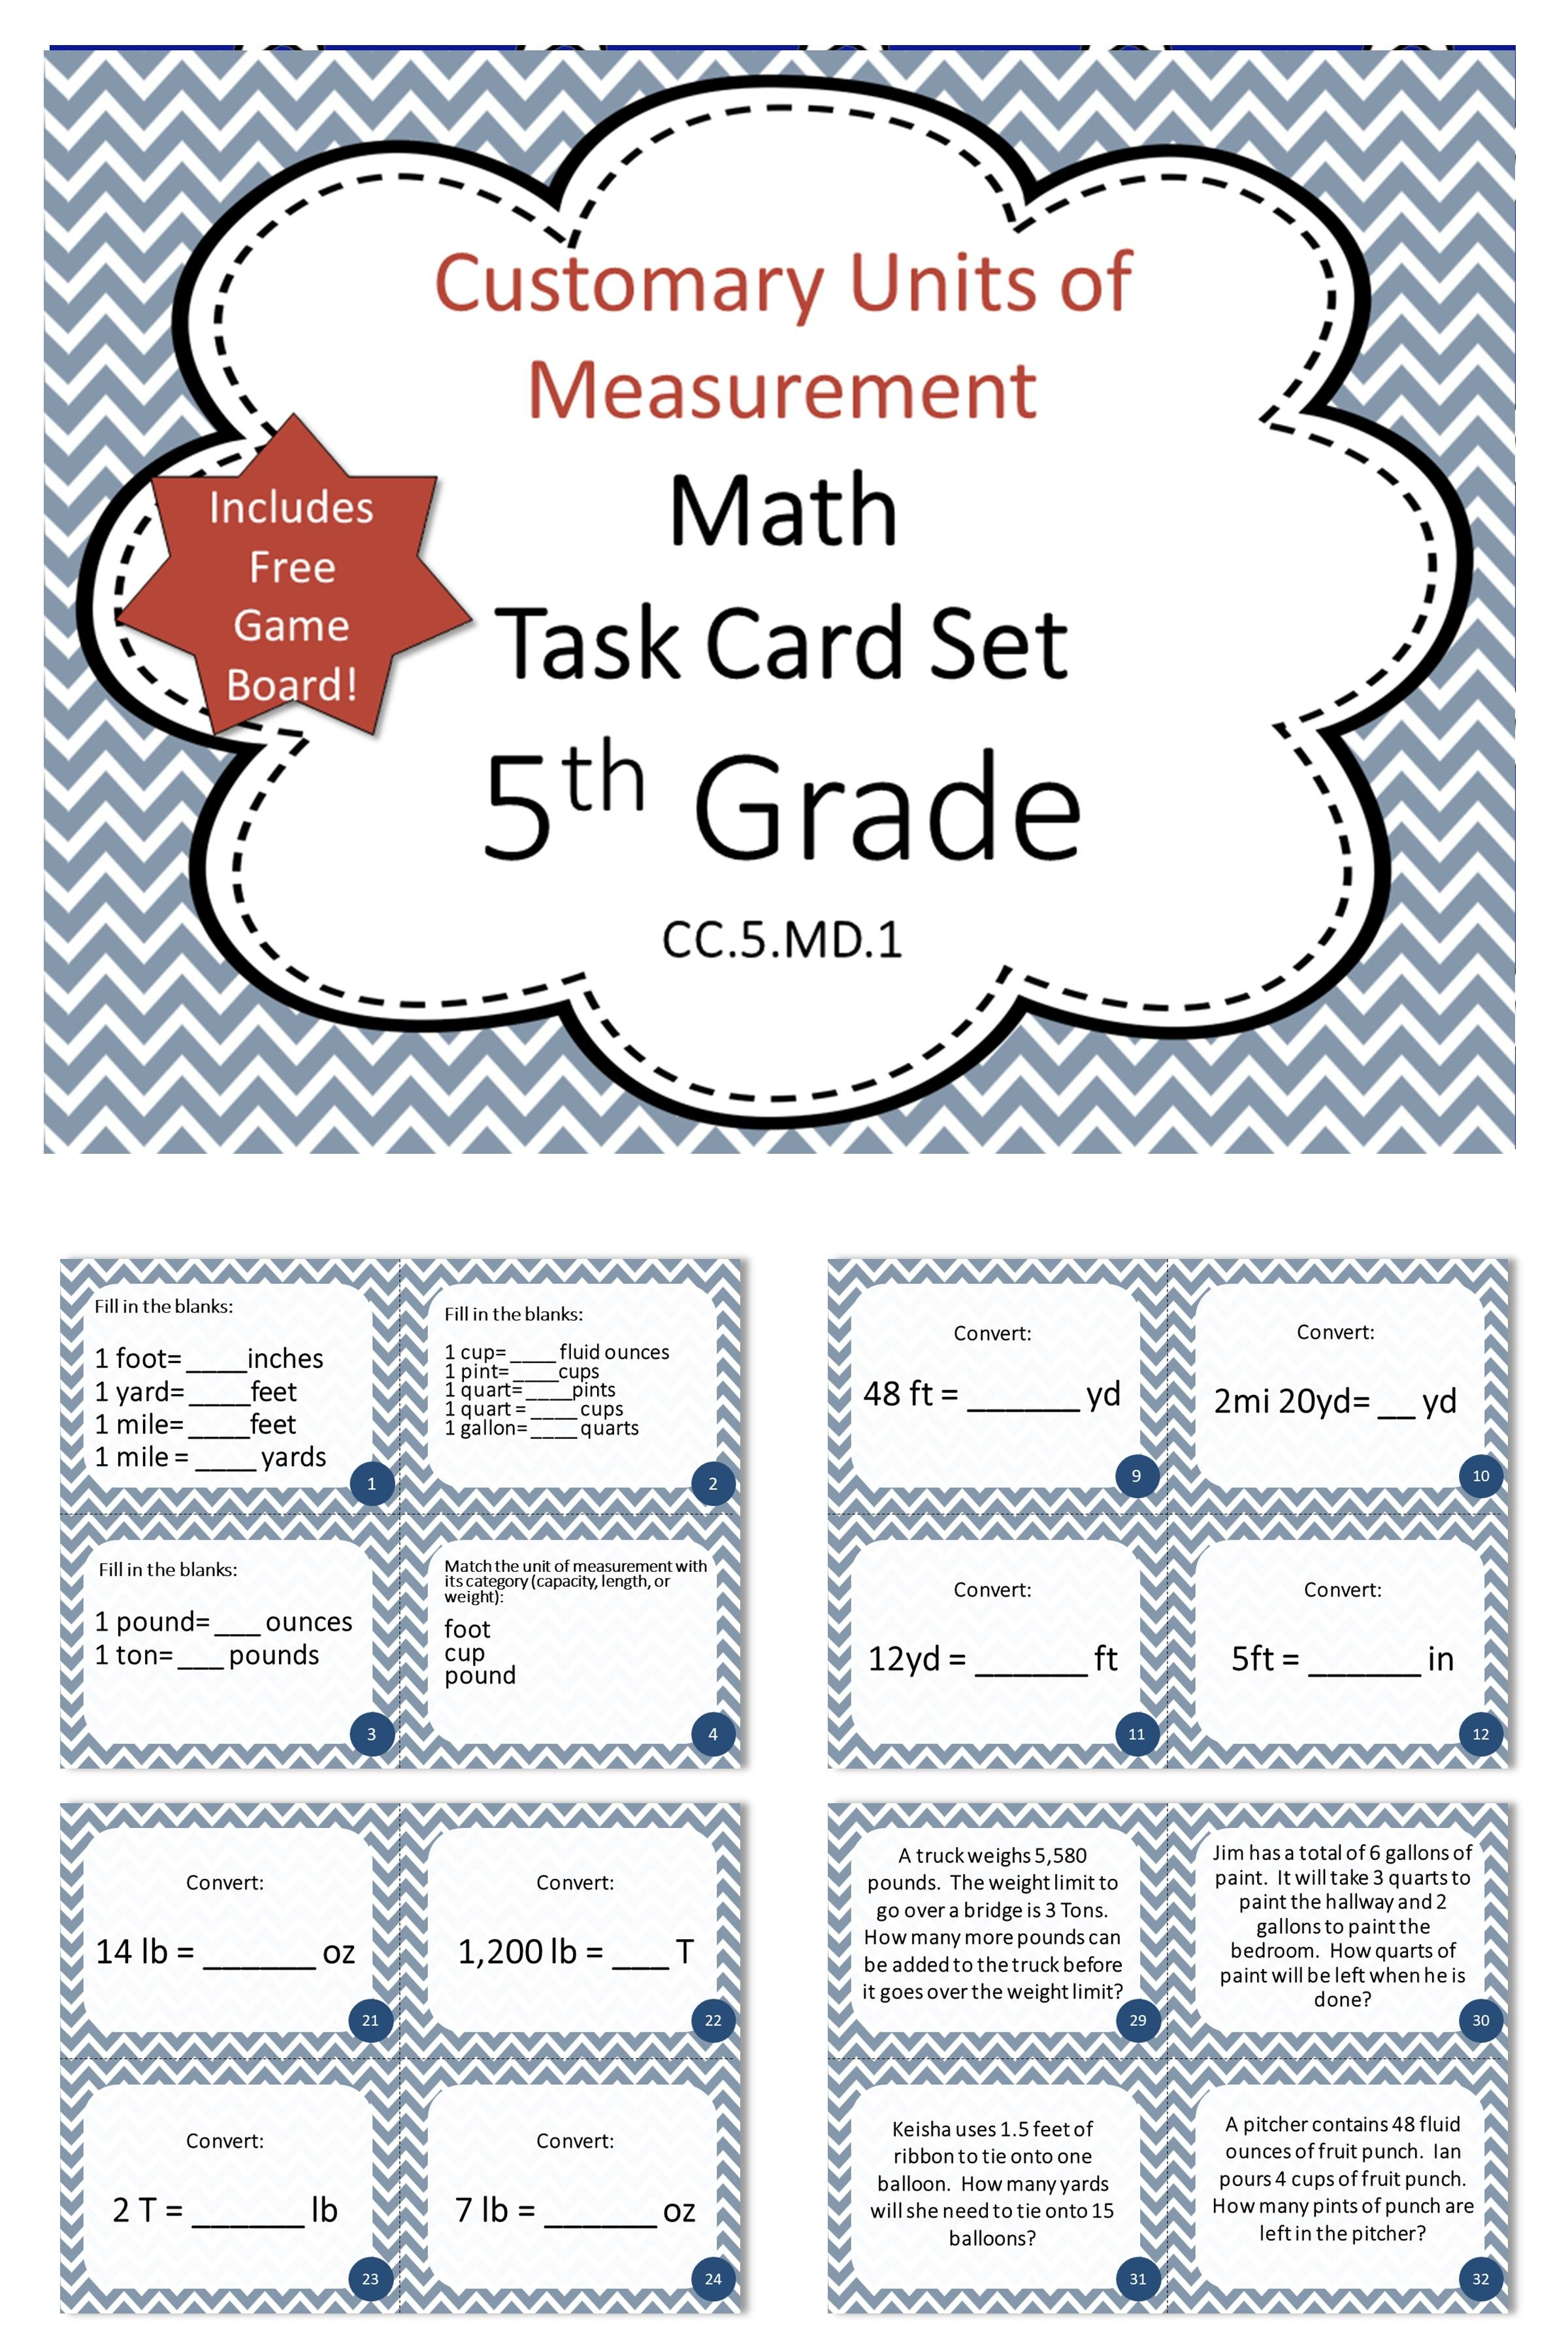 5th Grade Customary Units Of Measurement Math Task Cards